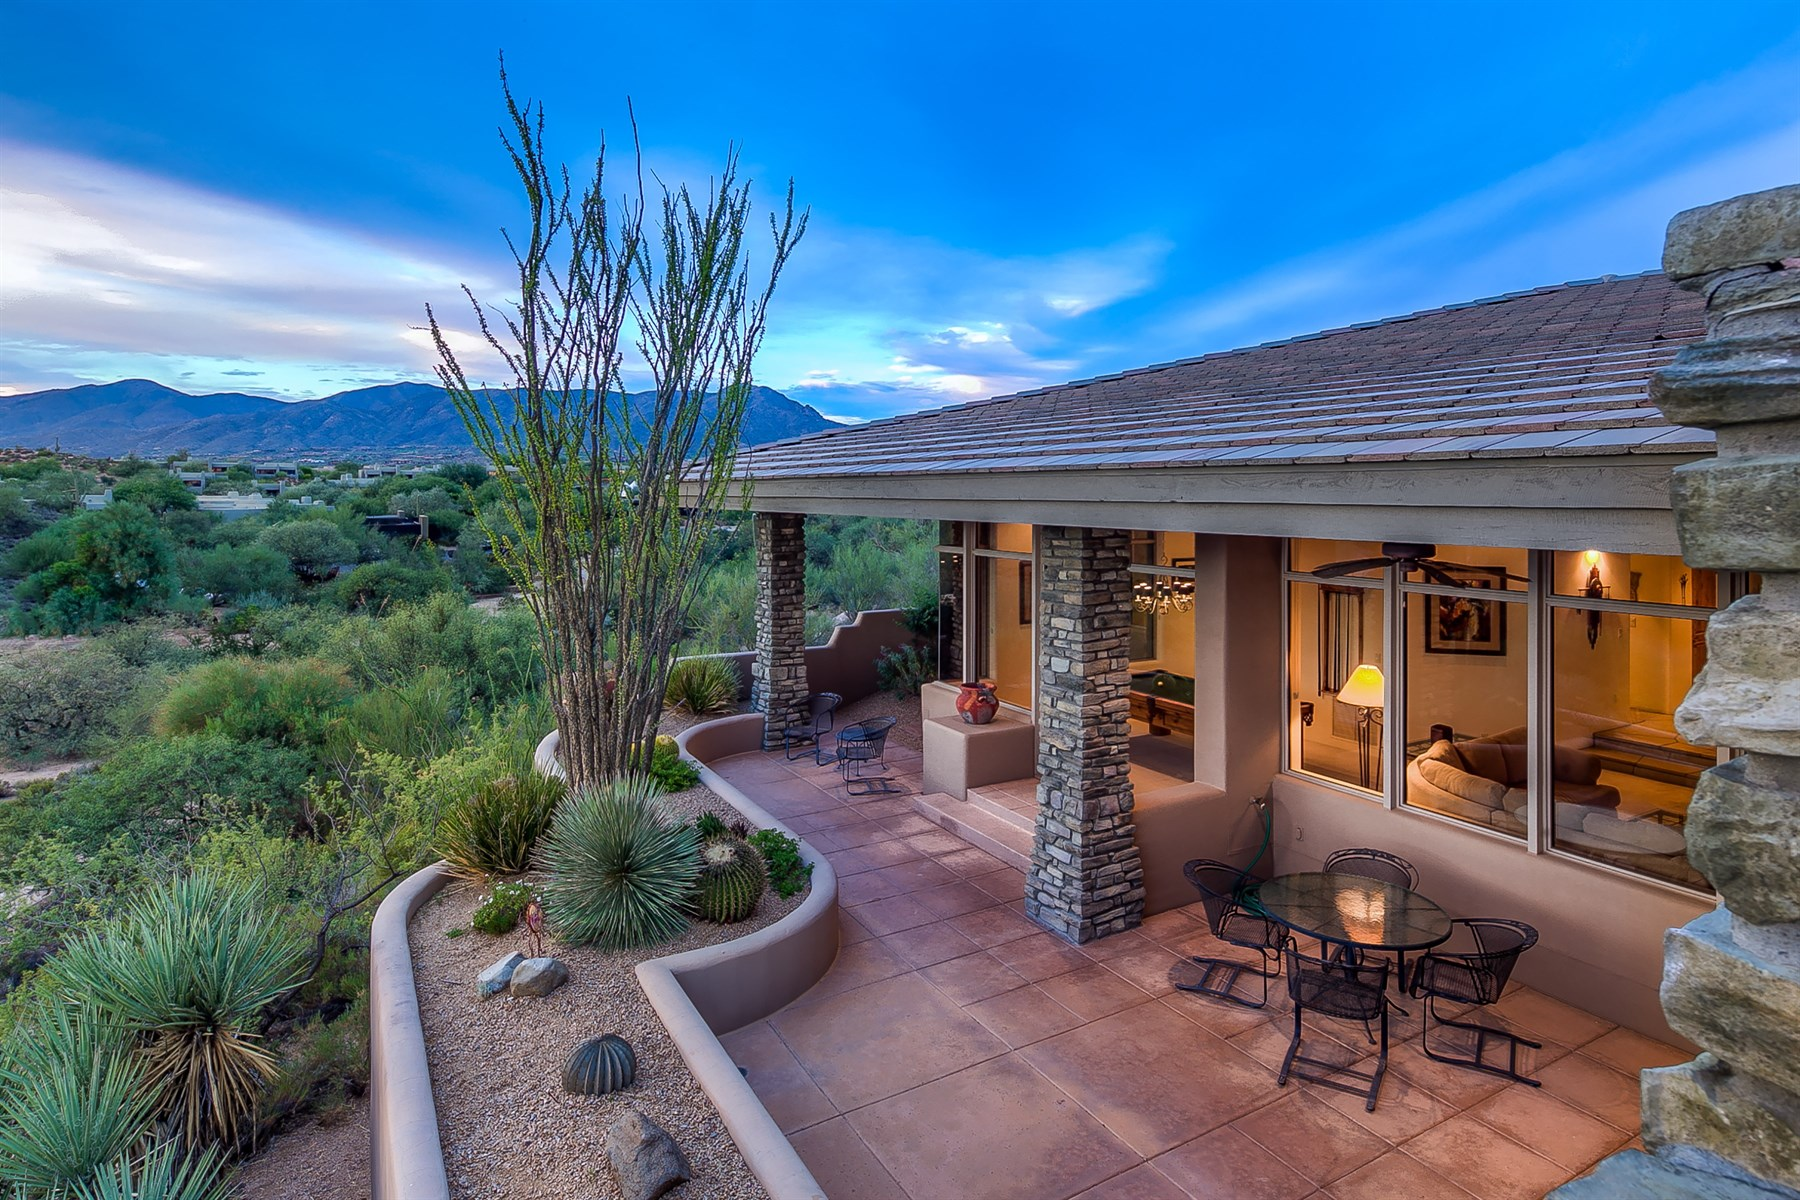 Single Family Home for Sale at One of the best locations and views in Sonoran Ridge 10036 E Old Trail Rd Scottsdale, Arizona, 85262 United States